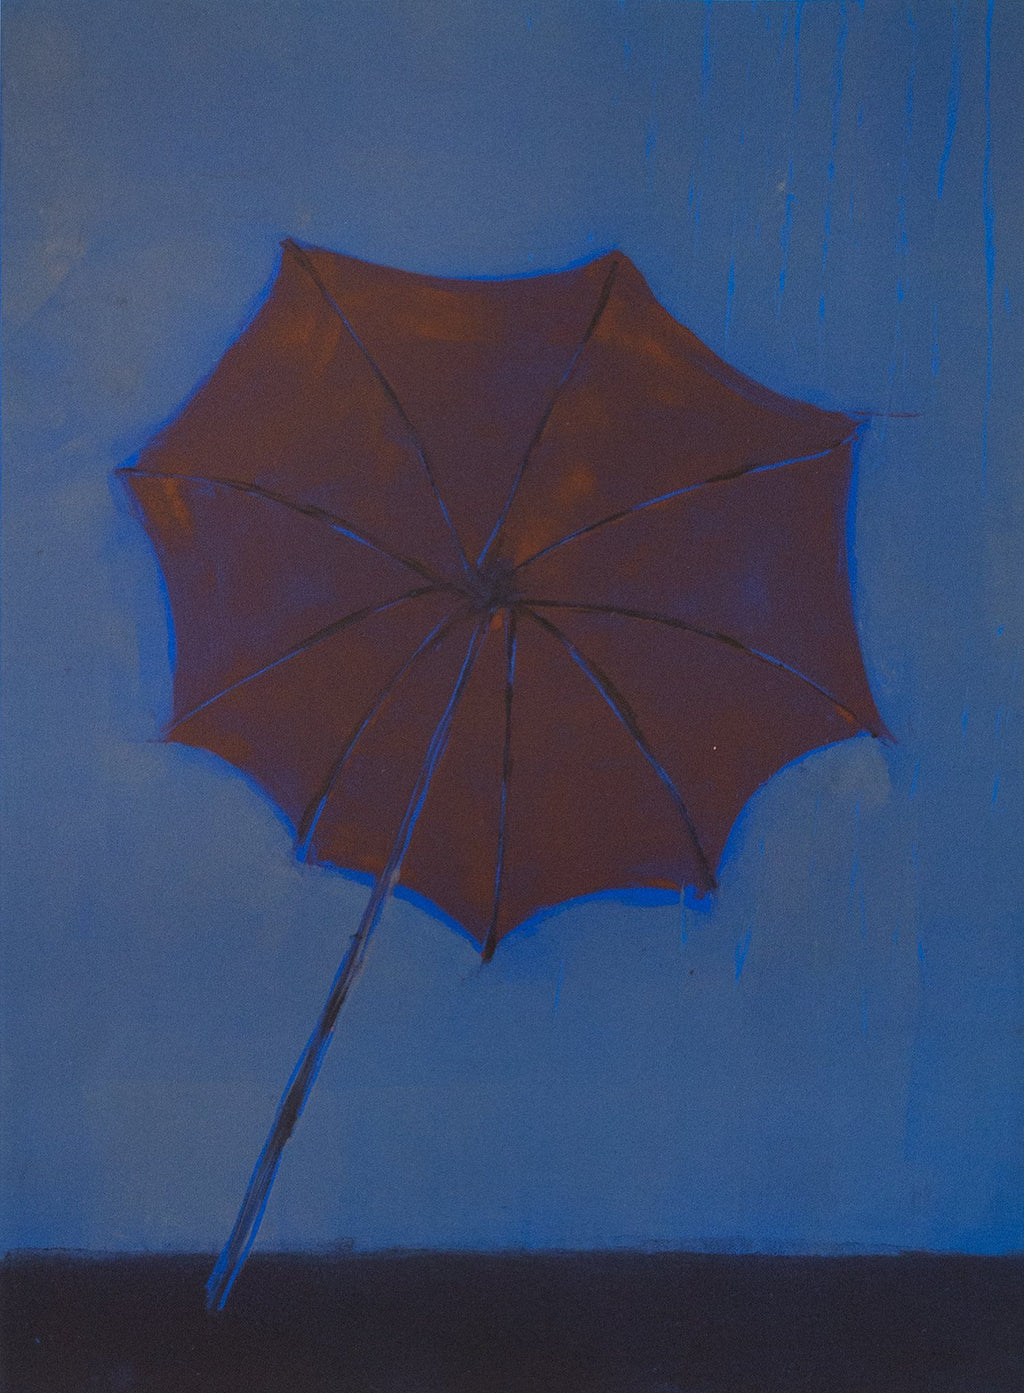 Blown Away, original monotype print, red umbrella, blue background